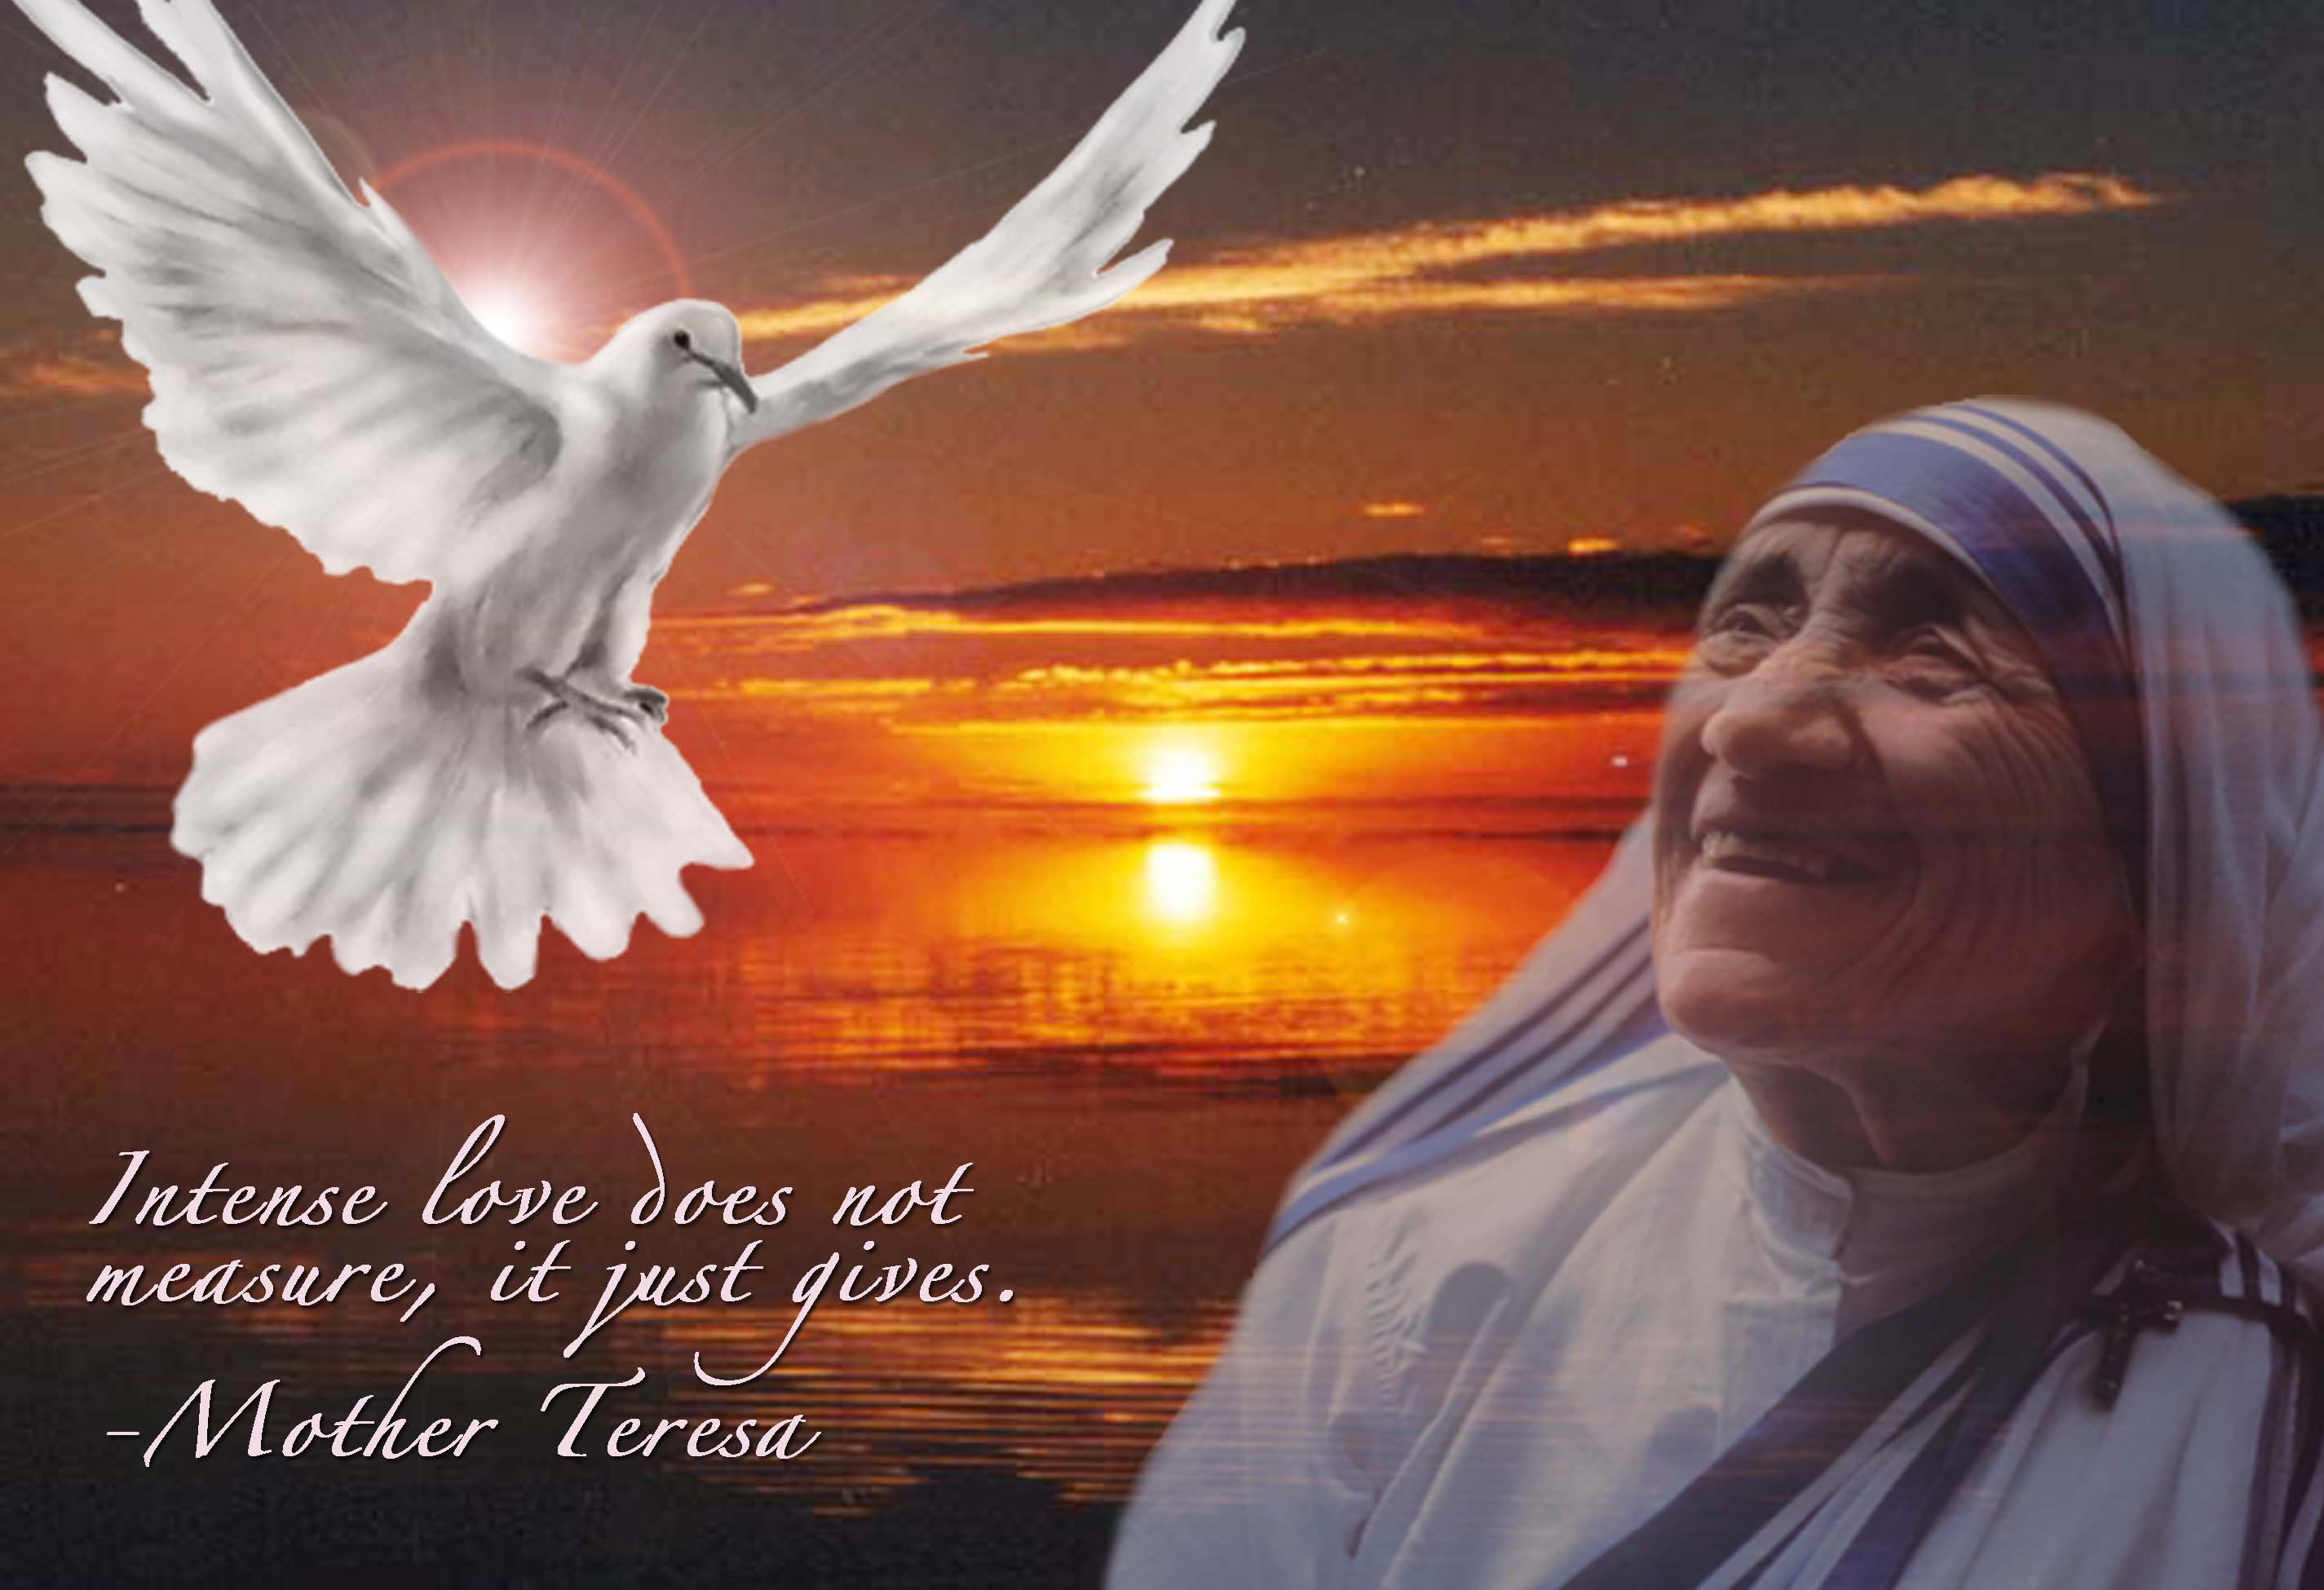 Mother Teresa Quotes Life The Life And Wisdom Of Mother Teresa Of Calcutta.